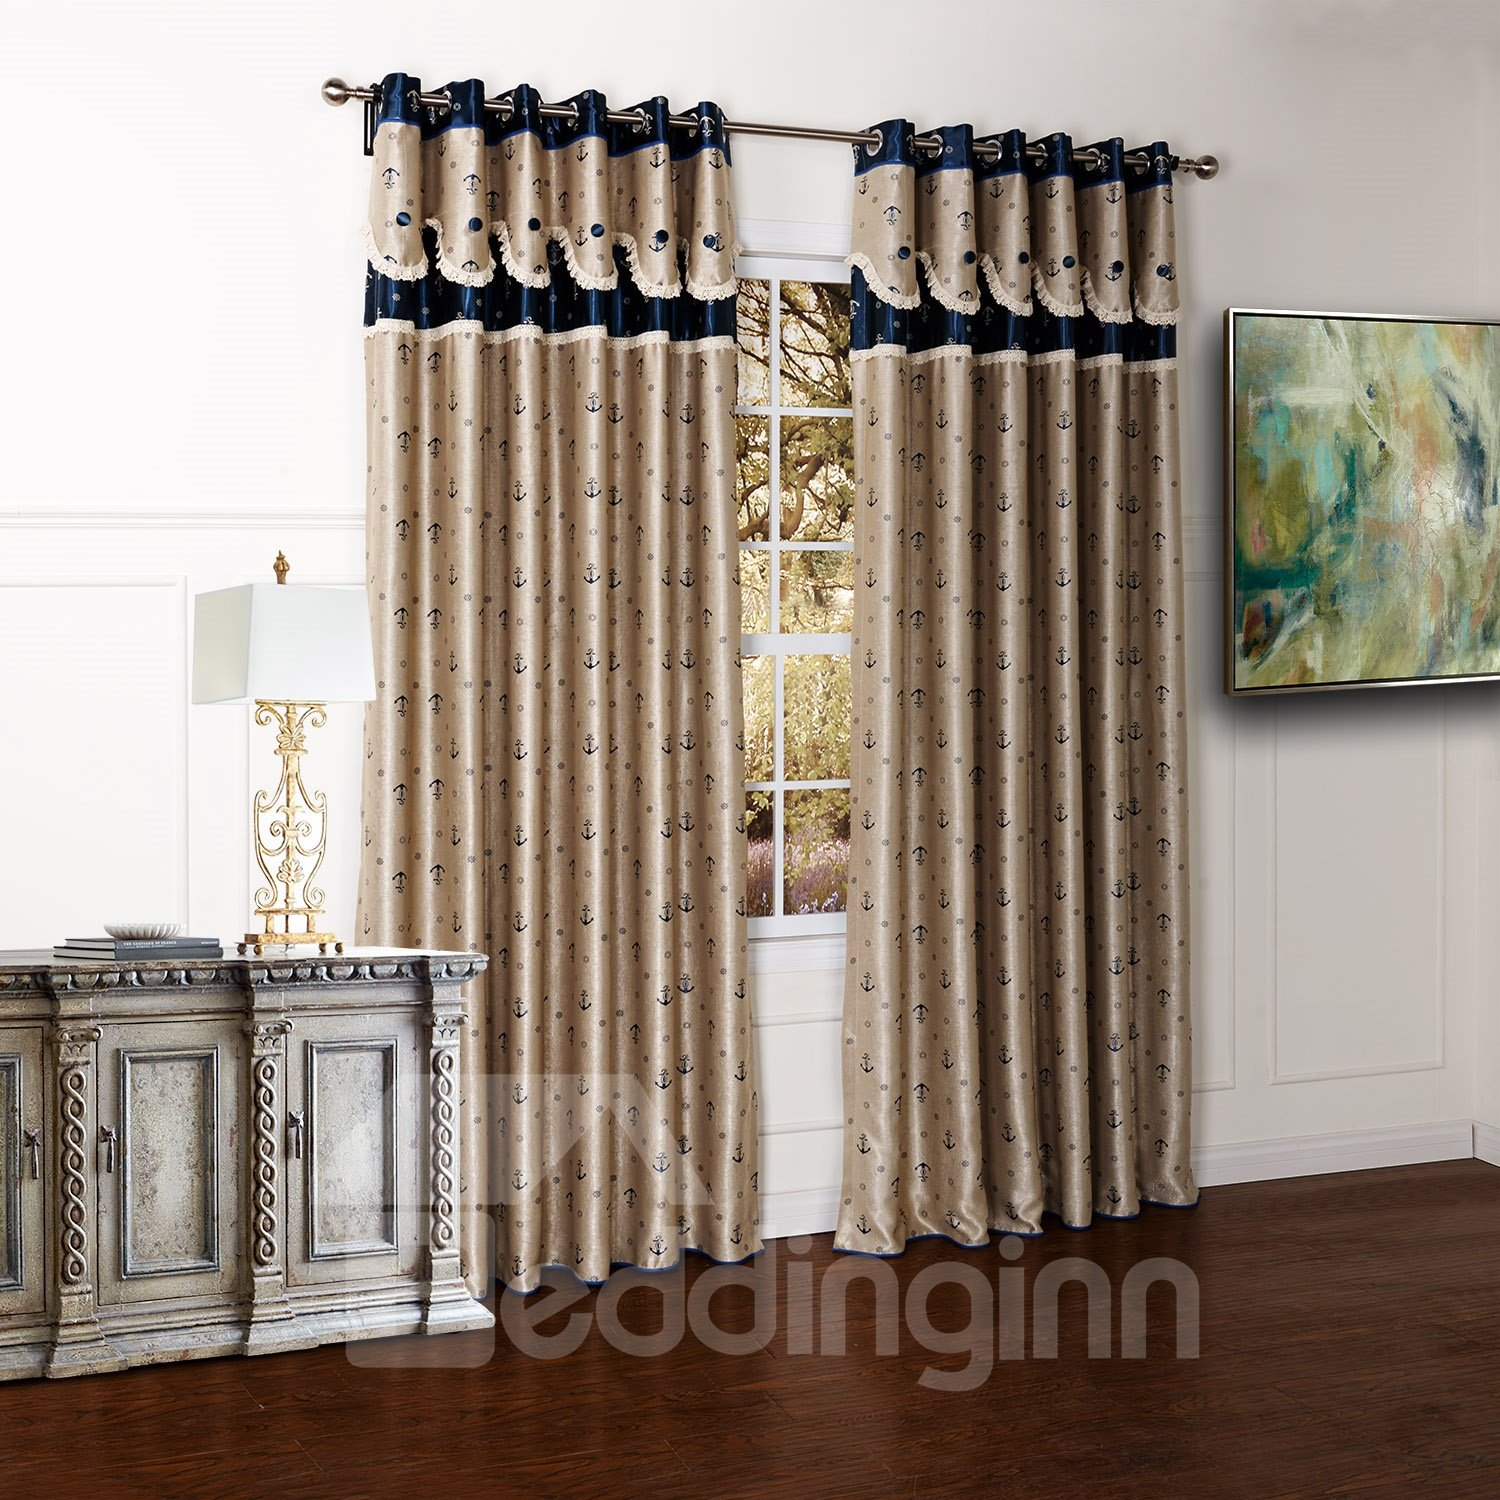 High Class Pretty Dyeing Double Color Custom Curtain